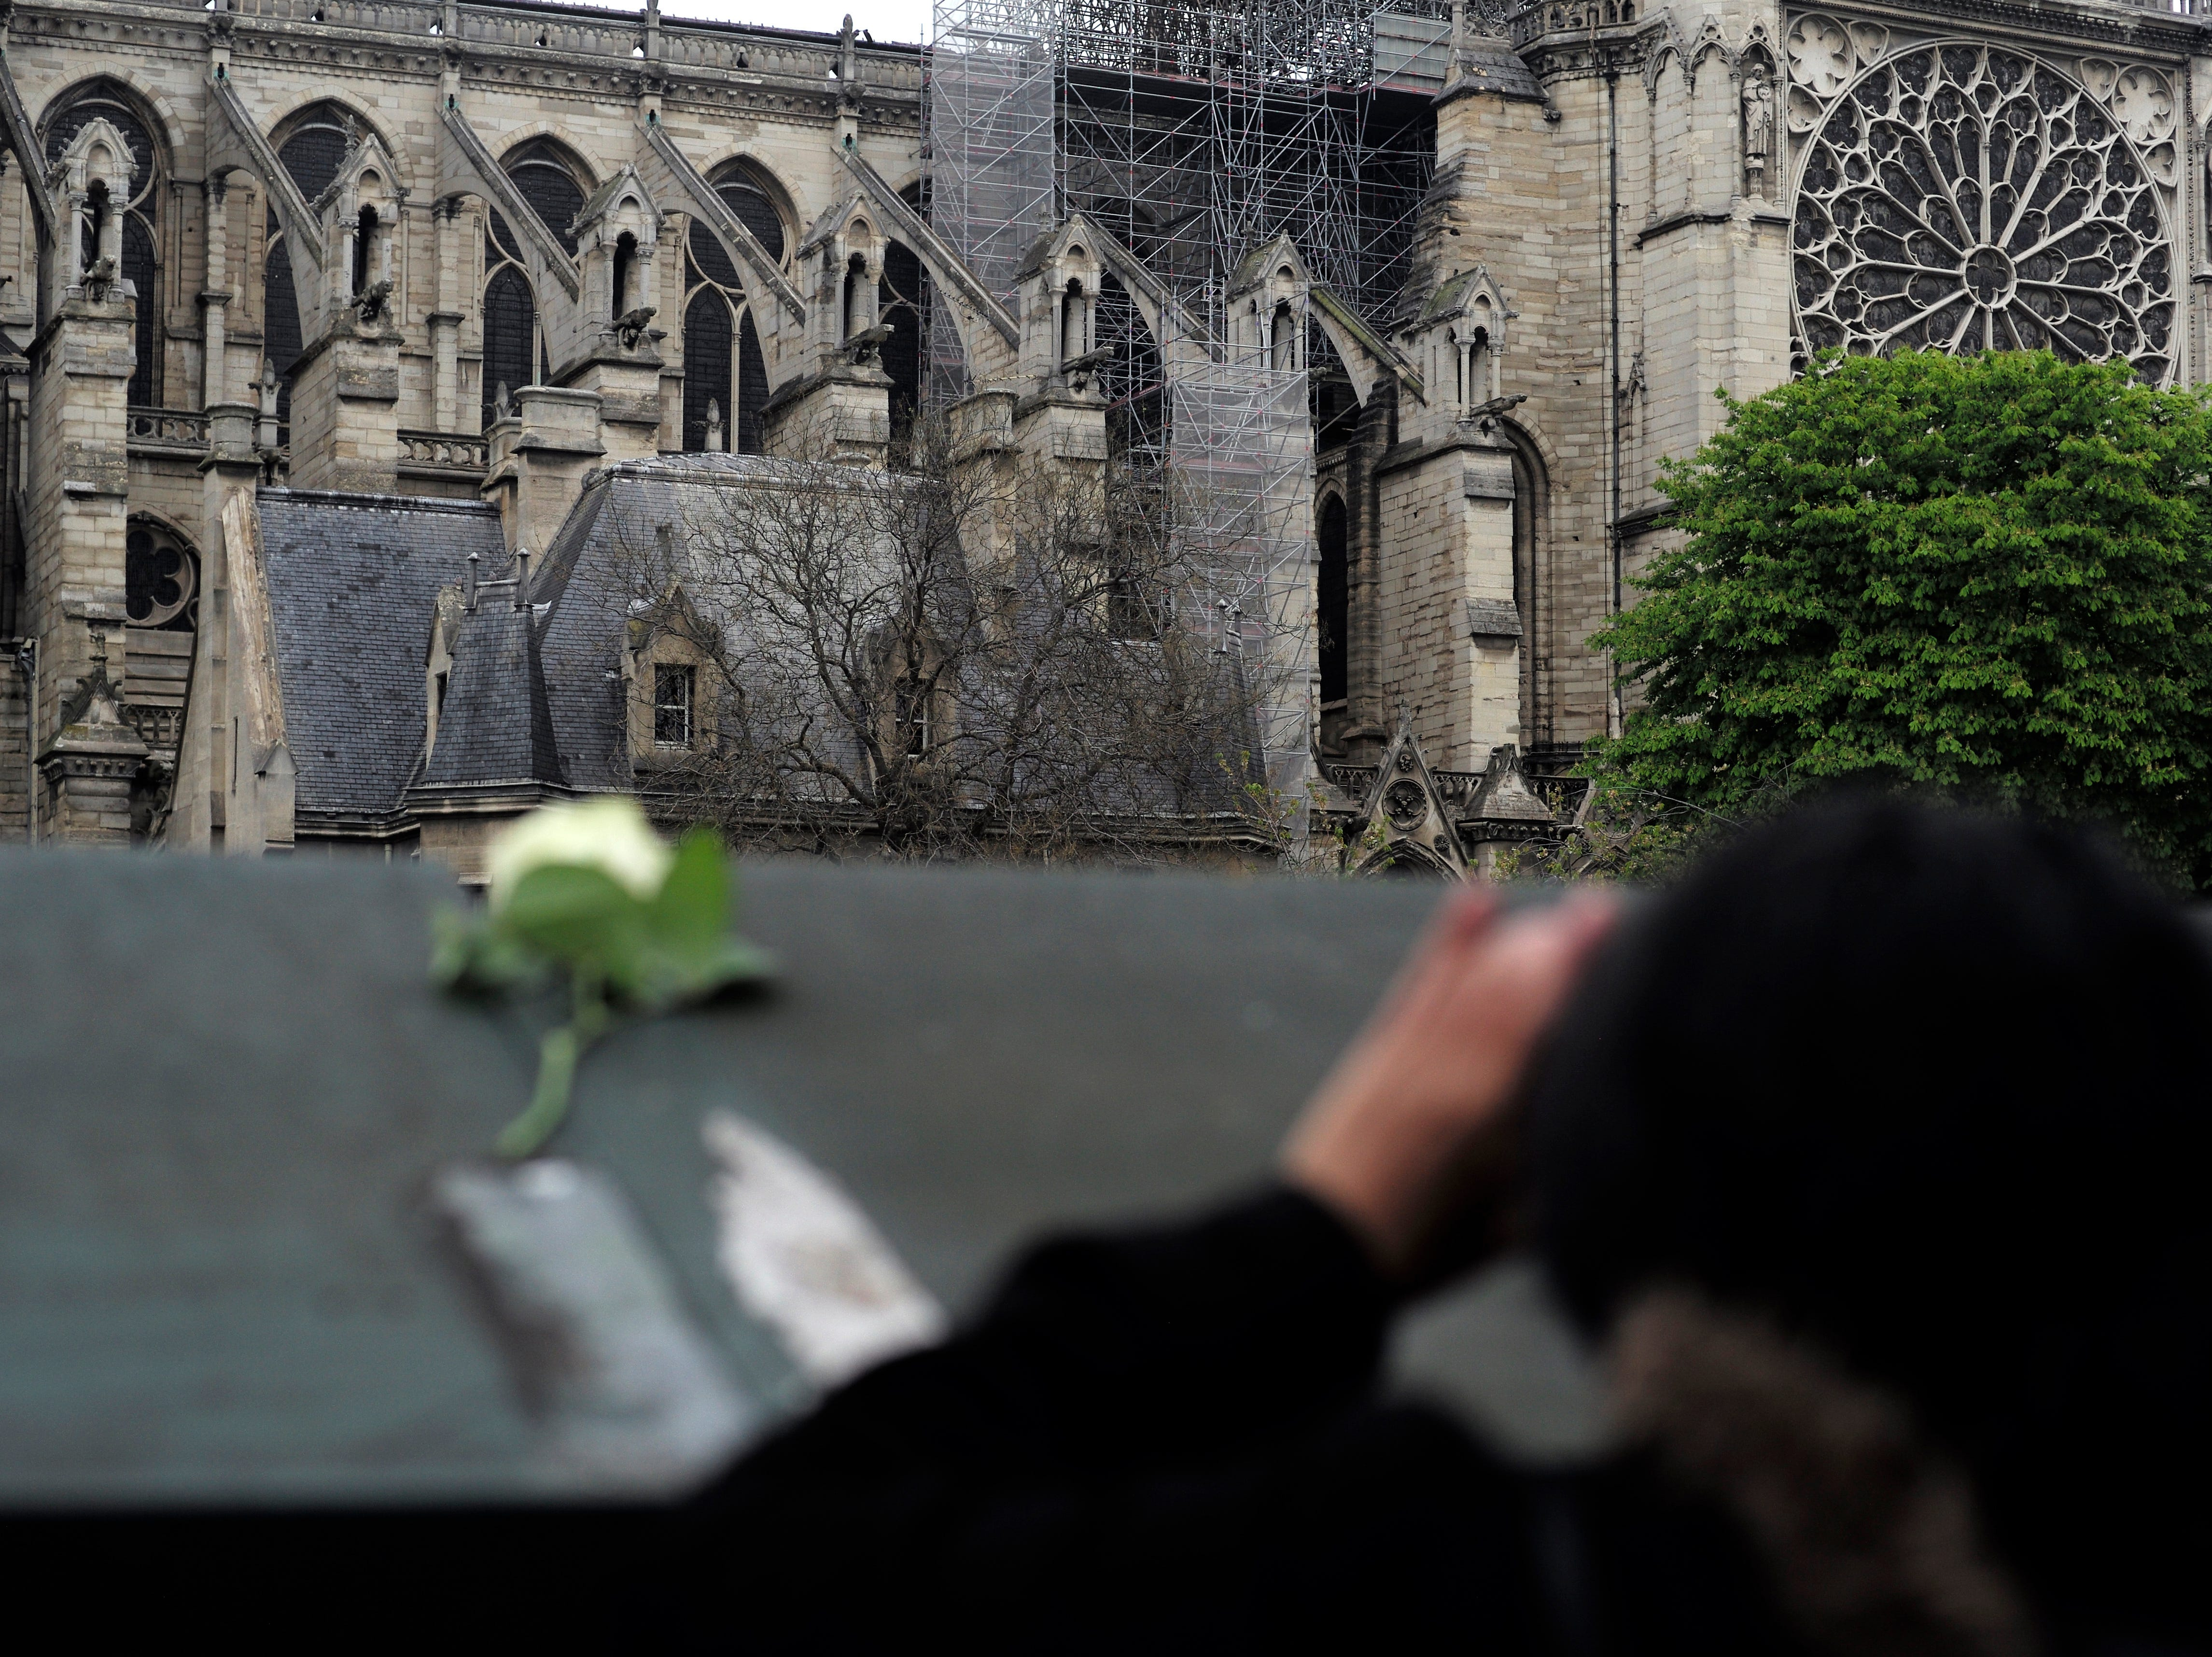 A woman photographs the Notre Dame cathedral after the fire in Paris, Tuesday, April 16, 2019. Experts are assessing the blackened shell of Paris' iconic Notre Dame cathedral to establish next steps to save what remains after a devastating fire destroyed much of the almost 900-year-old building. With the fire that broke out Monday evening and quickly consumed the cathedral now under control, attention is turning to ensuring the structural integrity of the remaining building. (AP Photo/Kamil Zihnioglu)